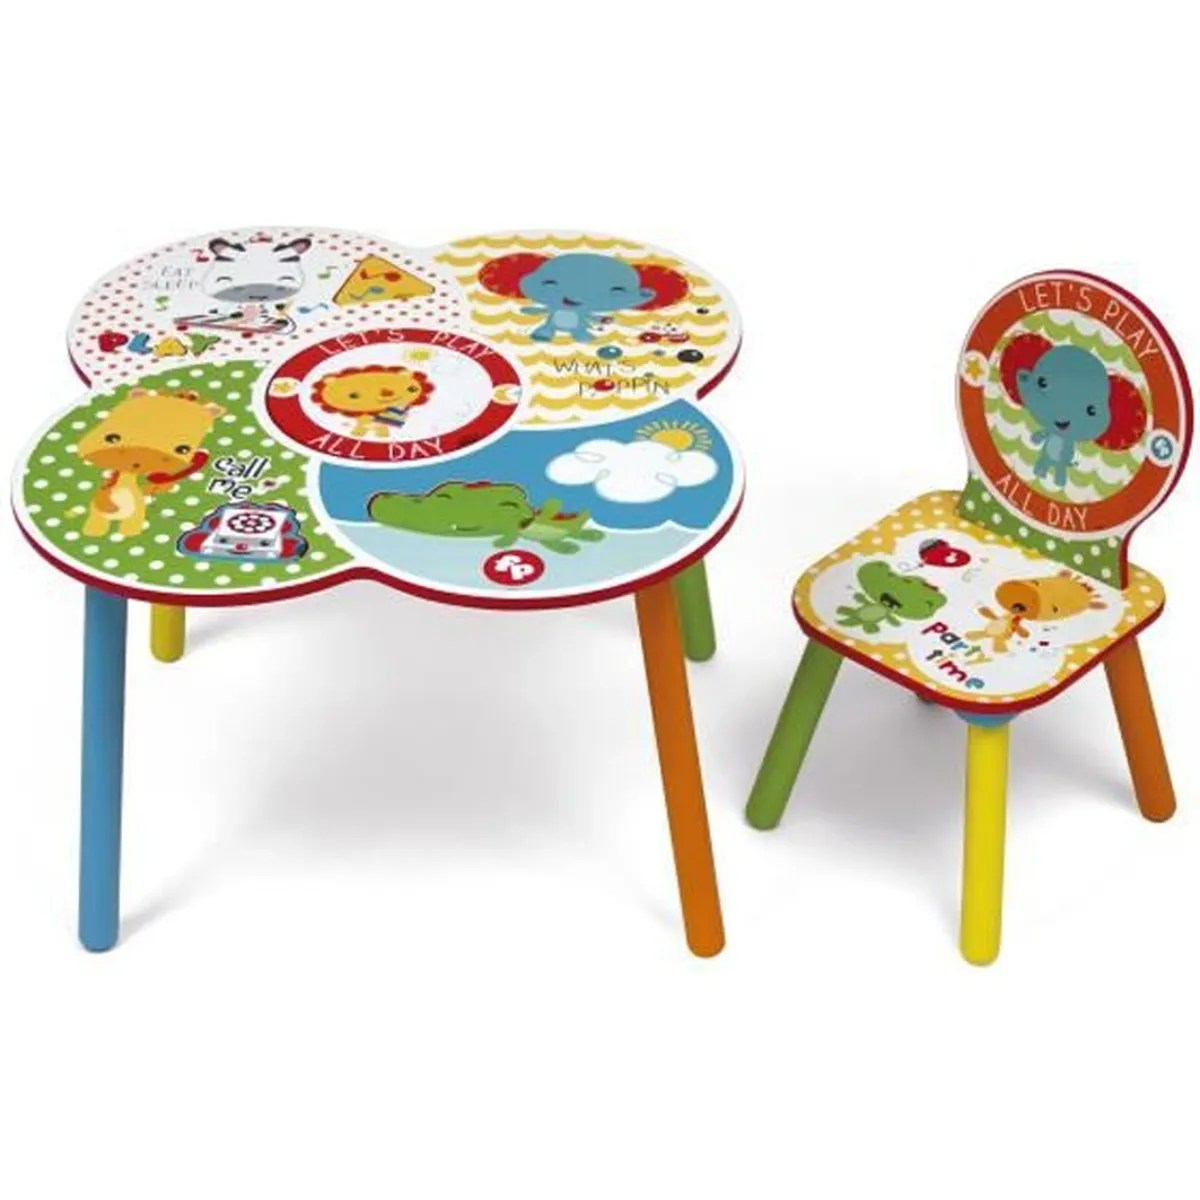 Chaise Eveil Progressif Fisher Price Chaise Fisher Price Musical Chaise Musicale Fisher Price